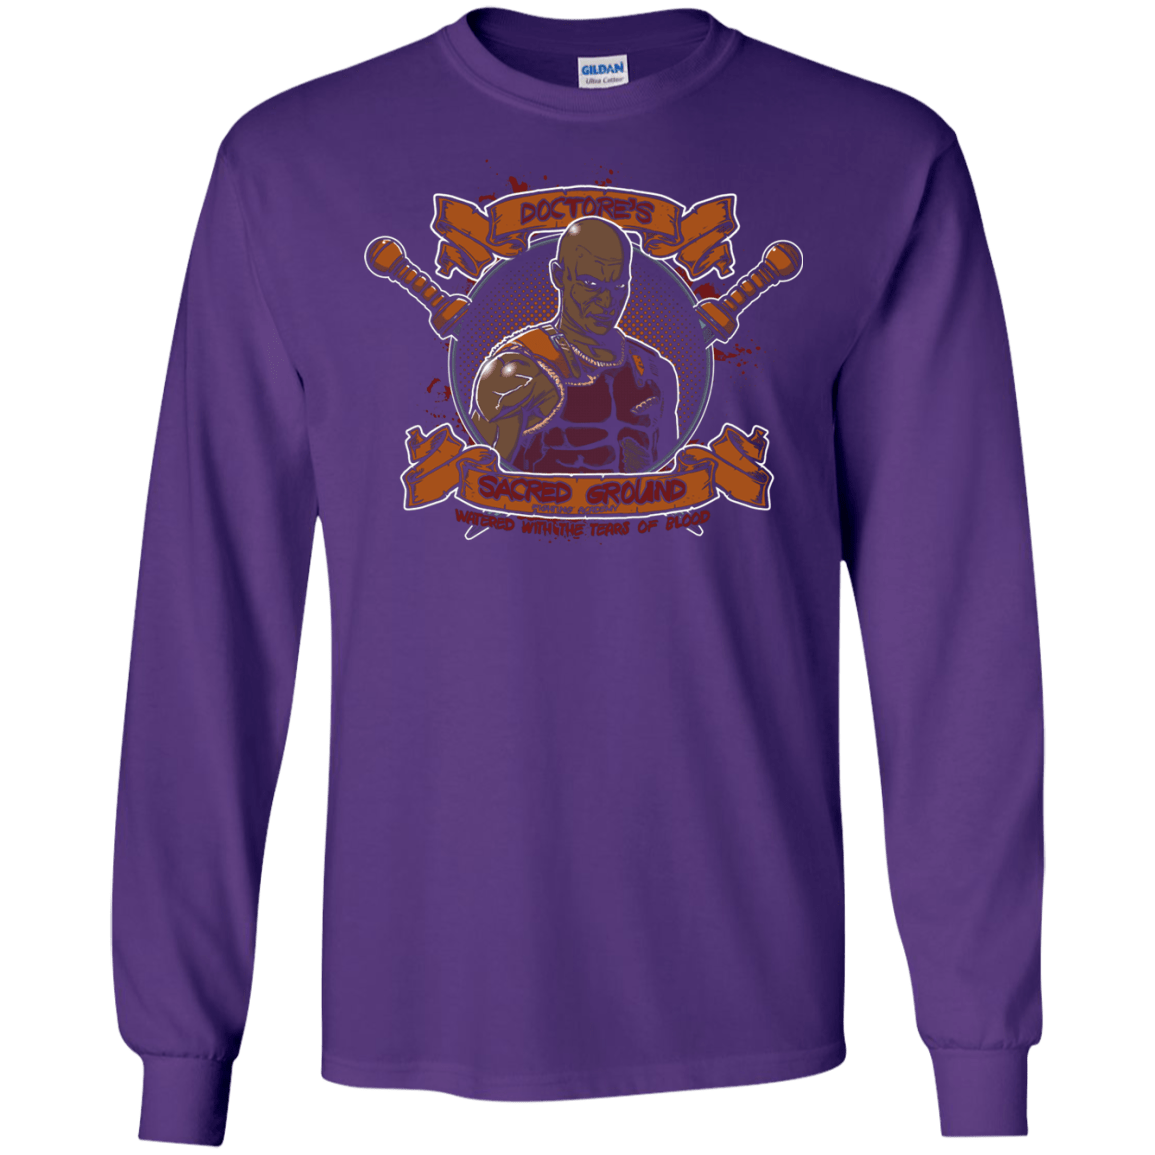 T-Shirts Purple / S Sacred Ground Men's Long Sleeve T-Shirt